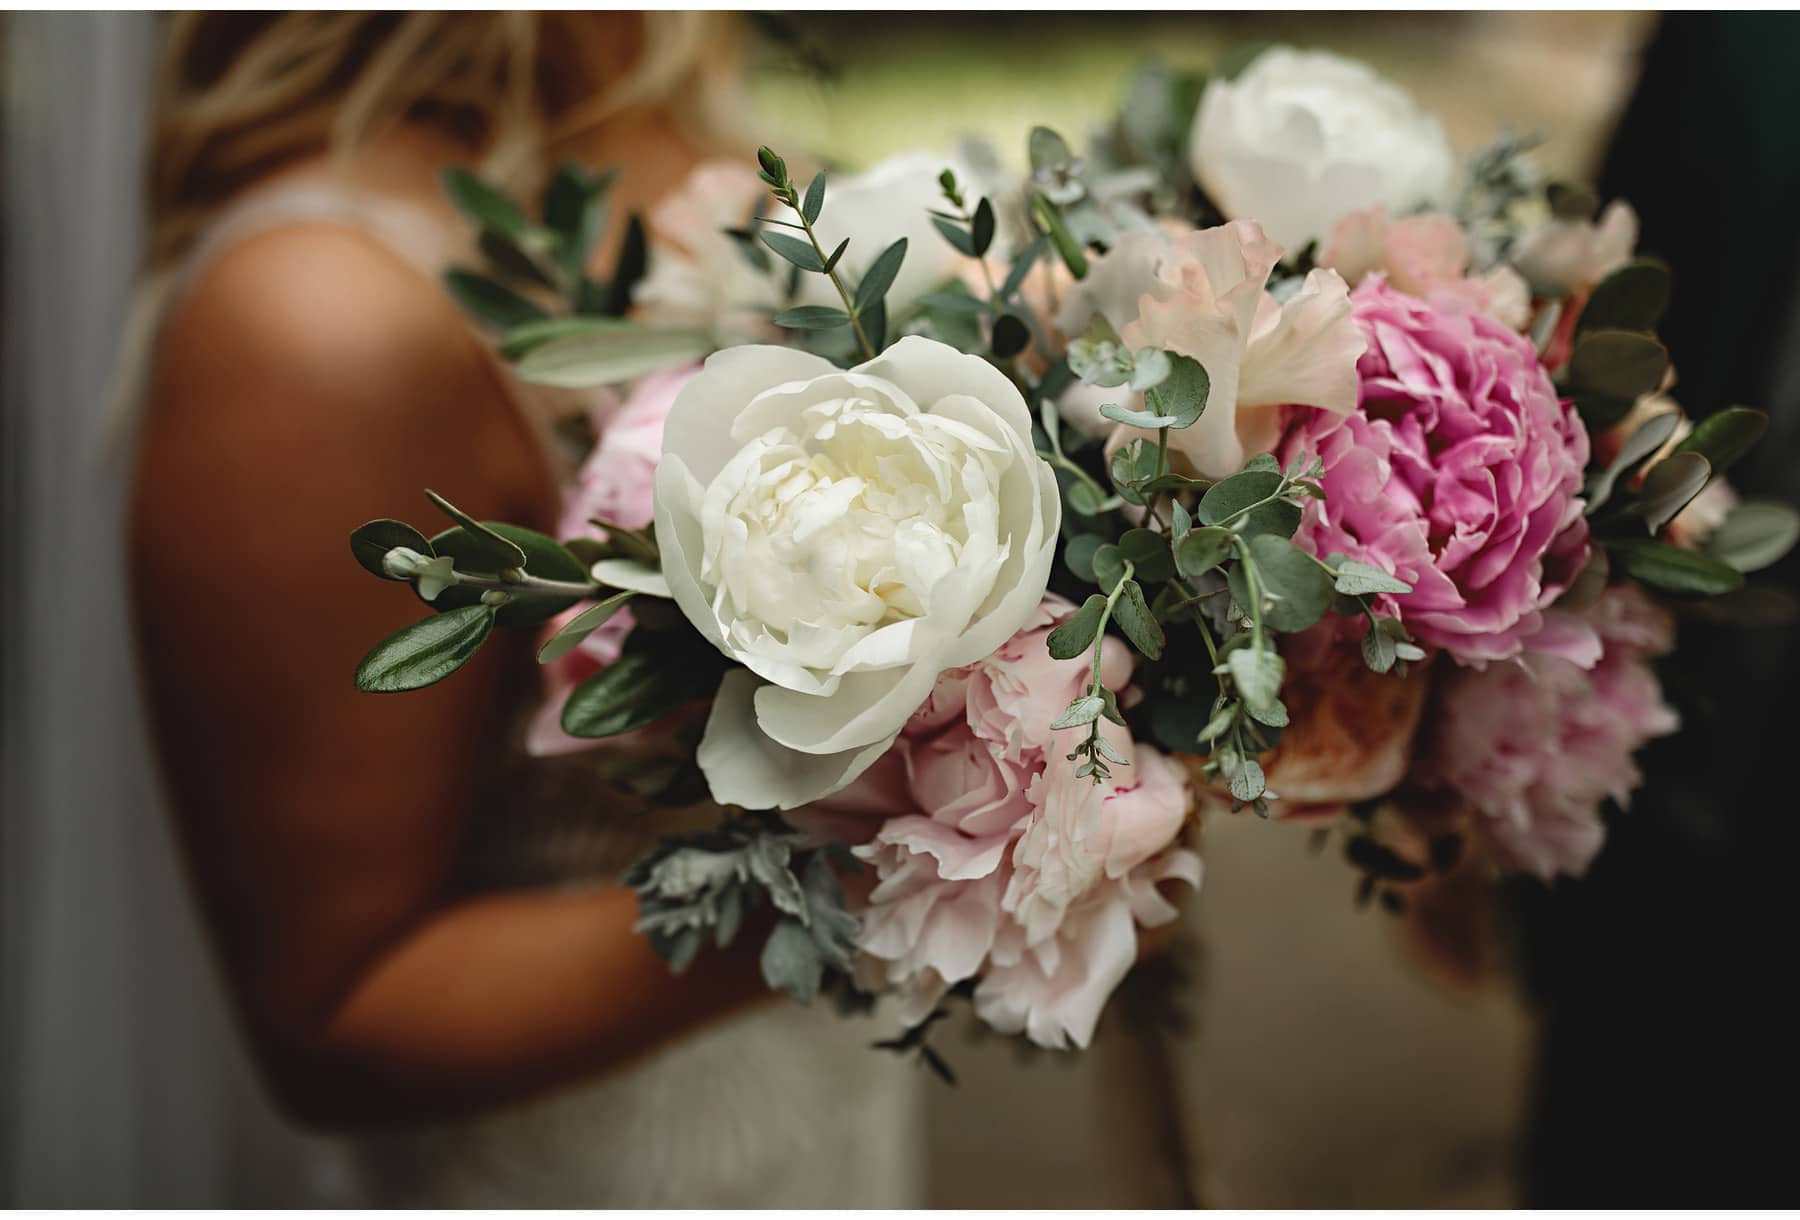 the bride's flower bouquet